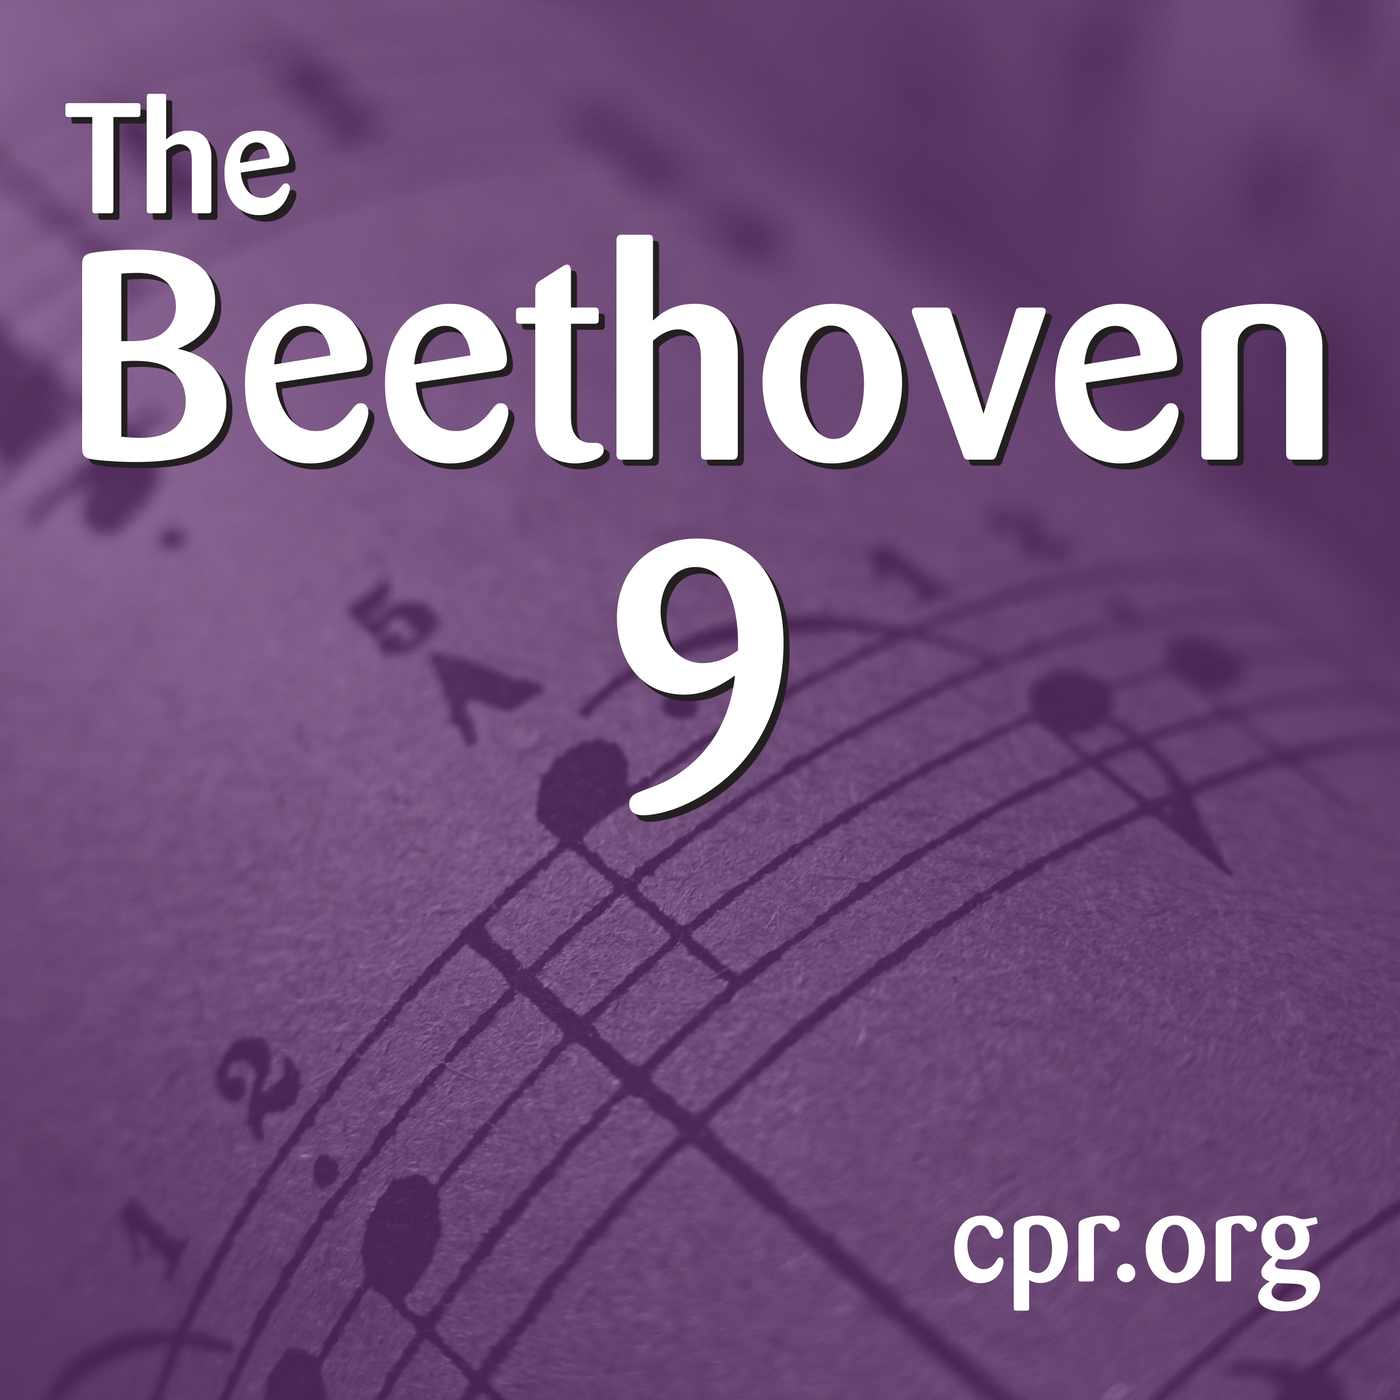 The Beethoven 9 : NPR